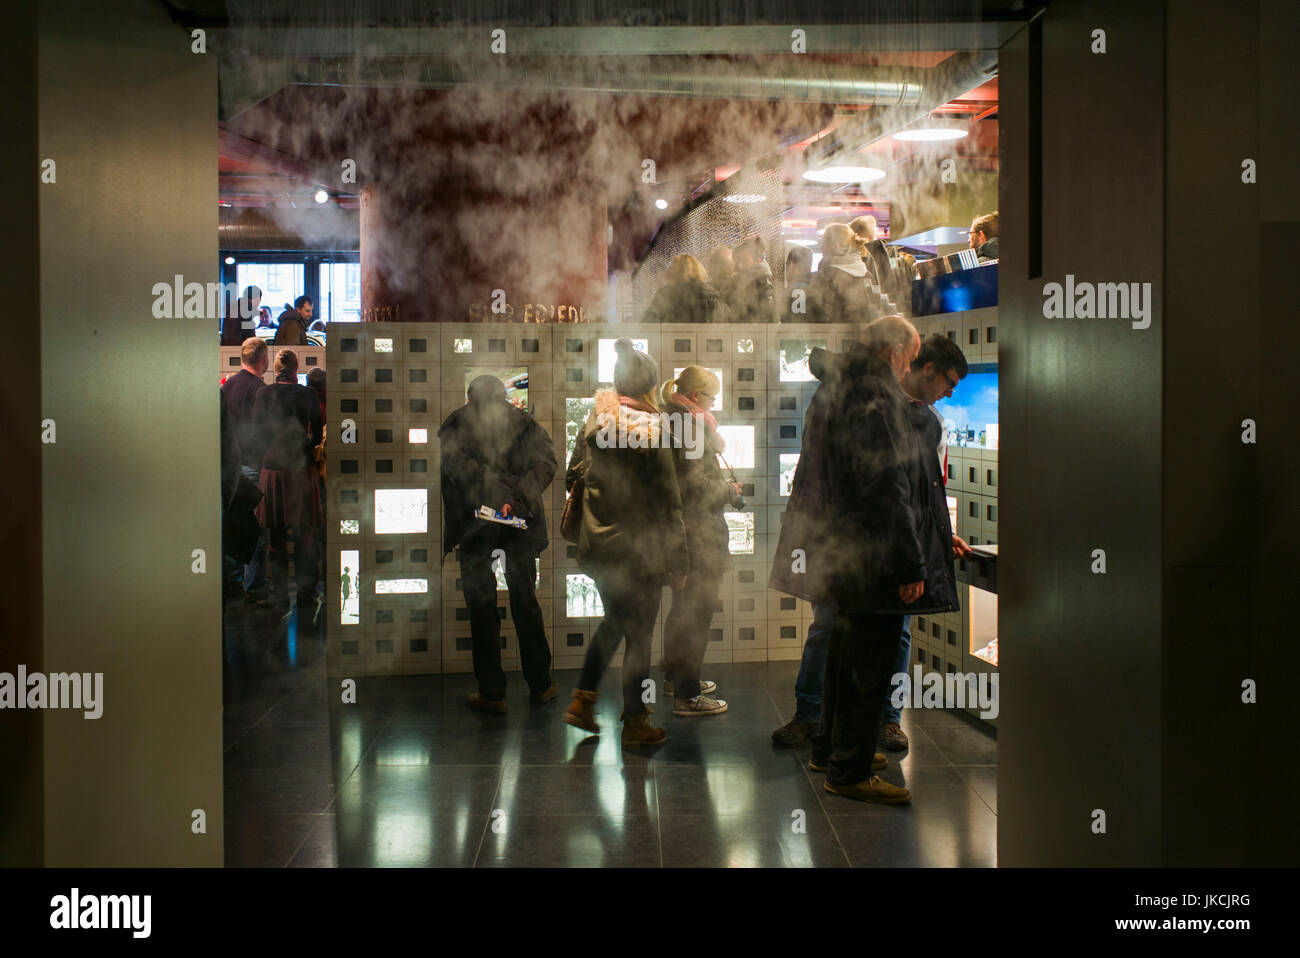 Germany, Berlin, Museum Insel, DDR Museum, museum of life in East German under Communist rule, exhibit with steam - Stock Image